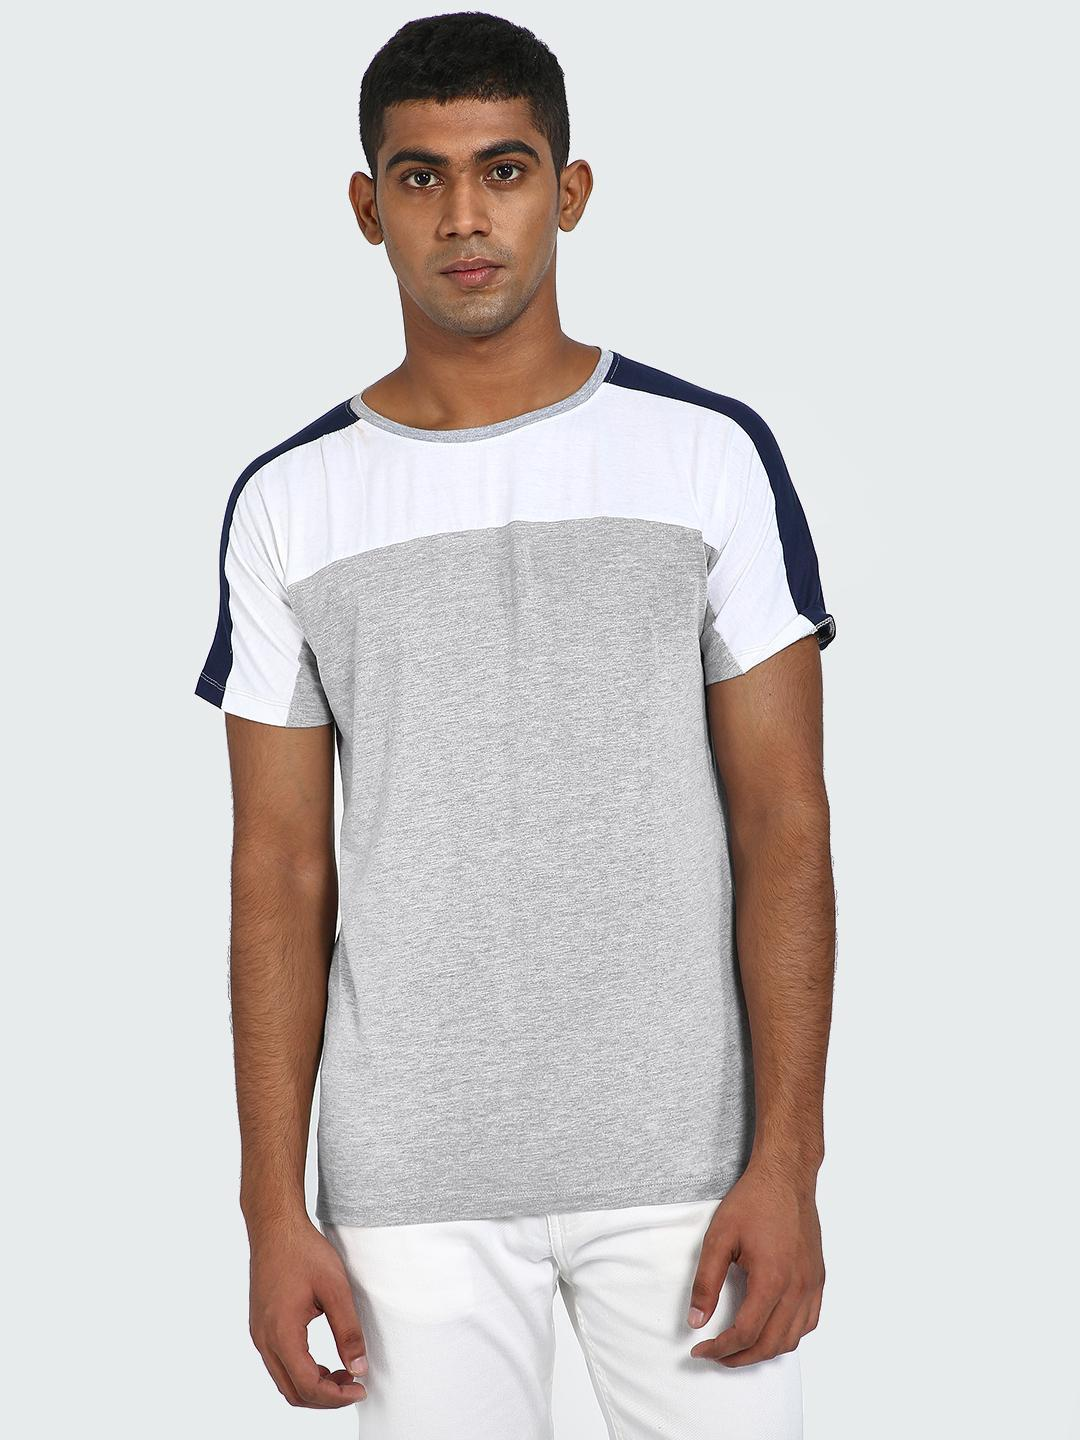 Blue Saint Grey Contrast Colour block T-Shirt 1